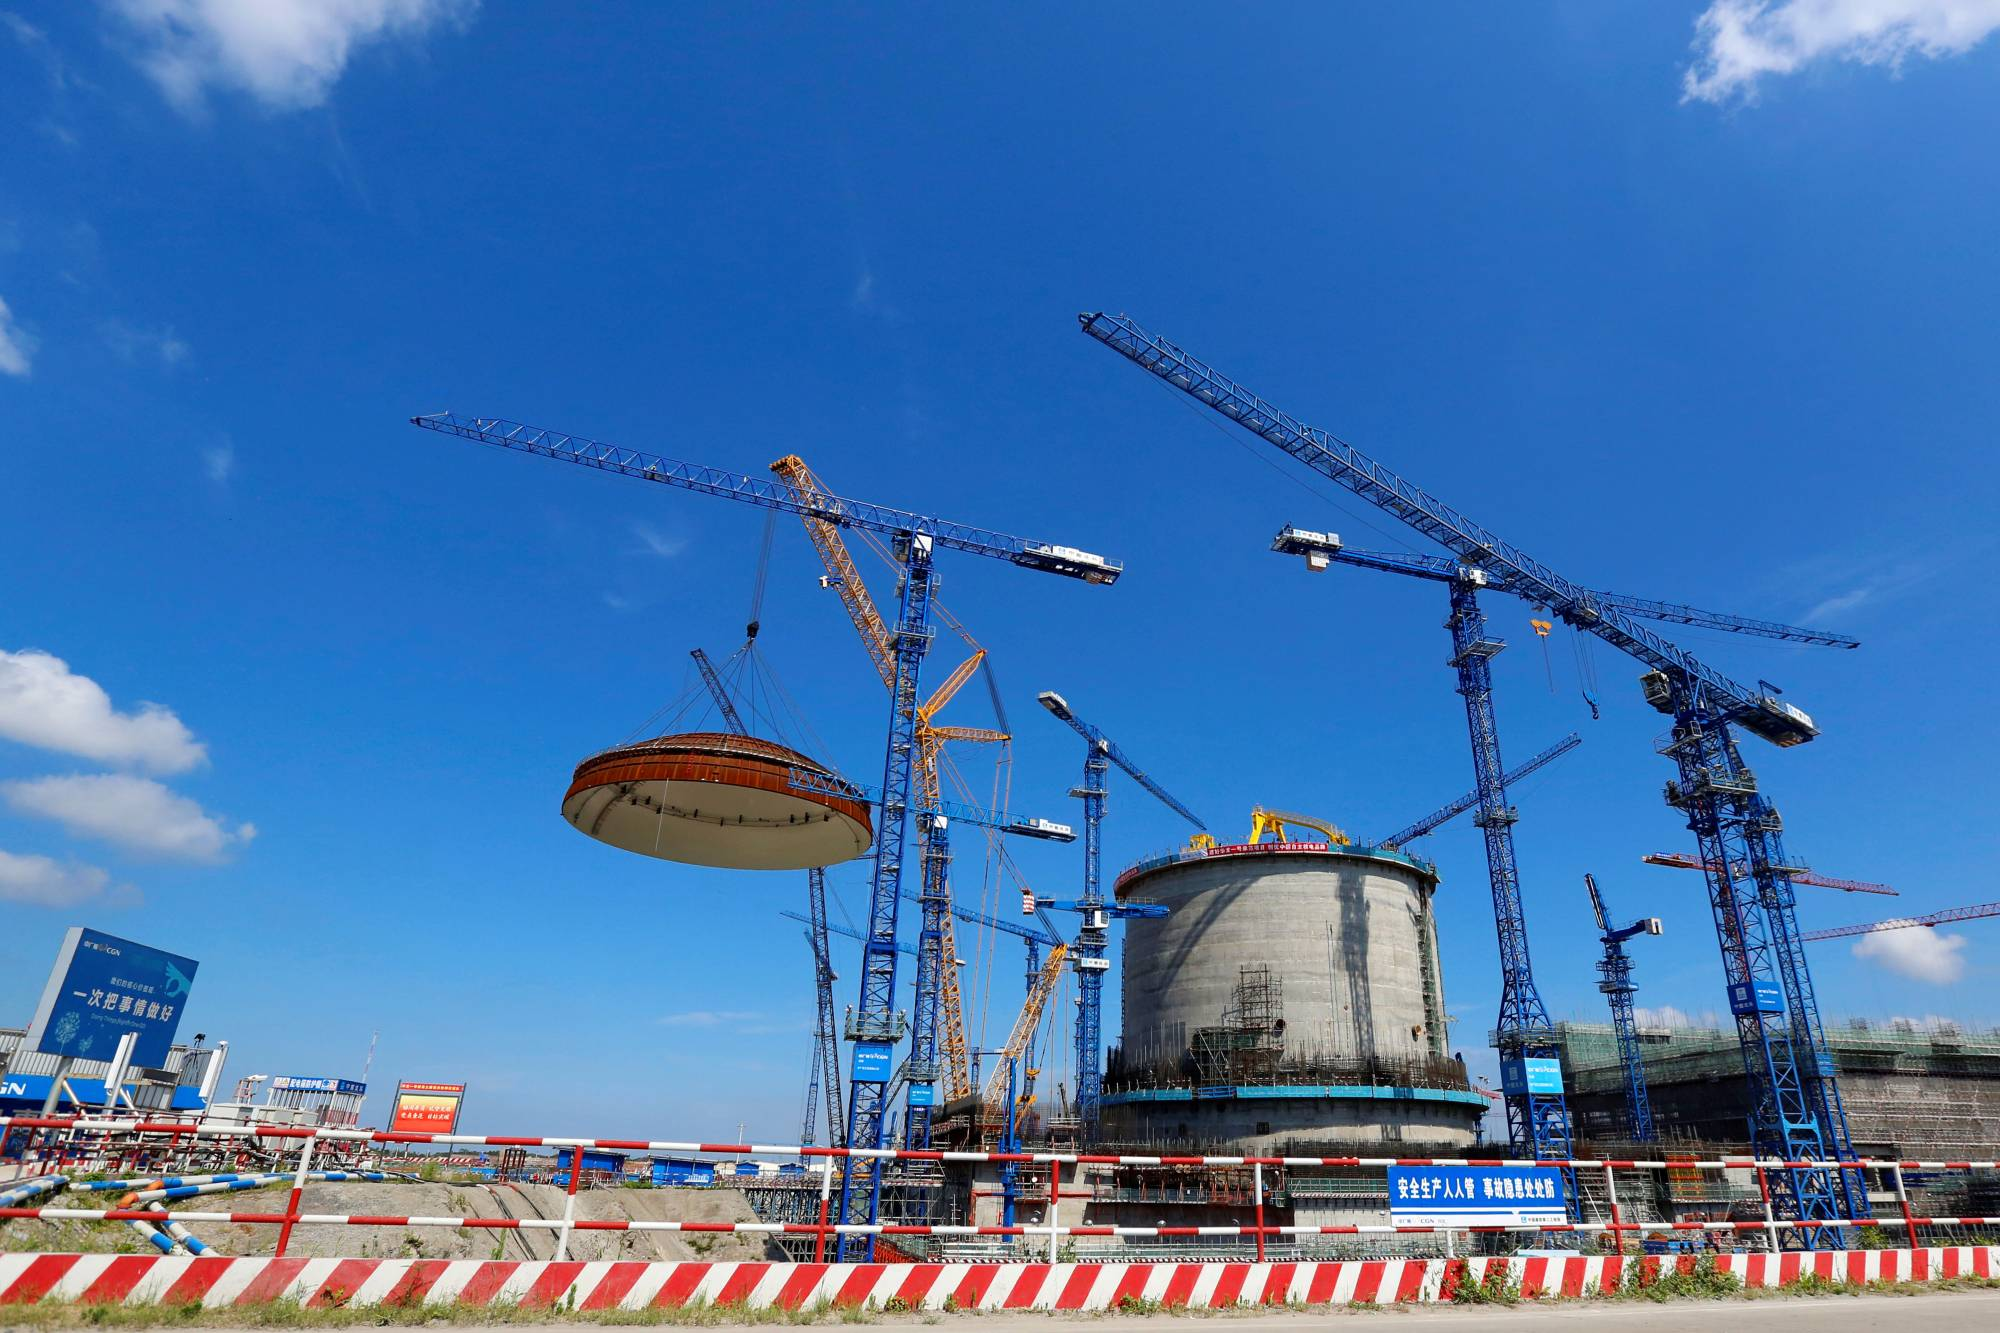 Hualong One pressurized water nuclear power units have been constructed in numerous areas of China, and agreements have been signed with Argentina and Iran to build similar plants there. | CHINA DAILY / VIA REUTERS